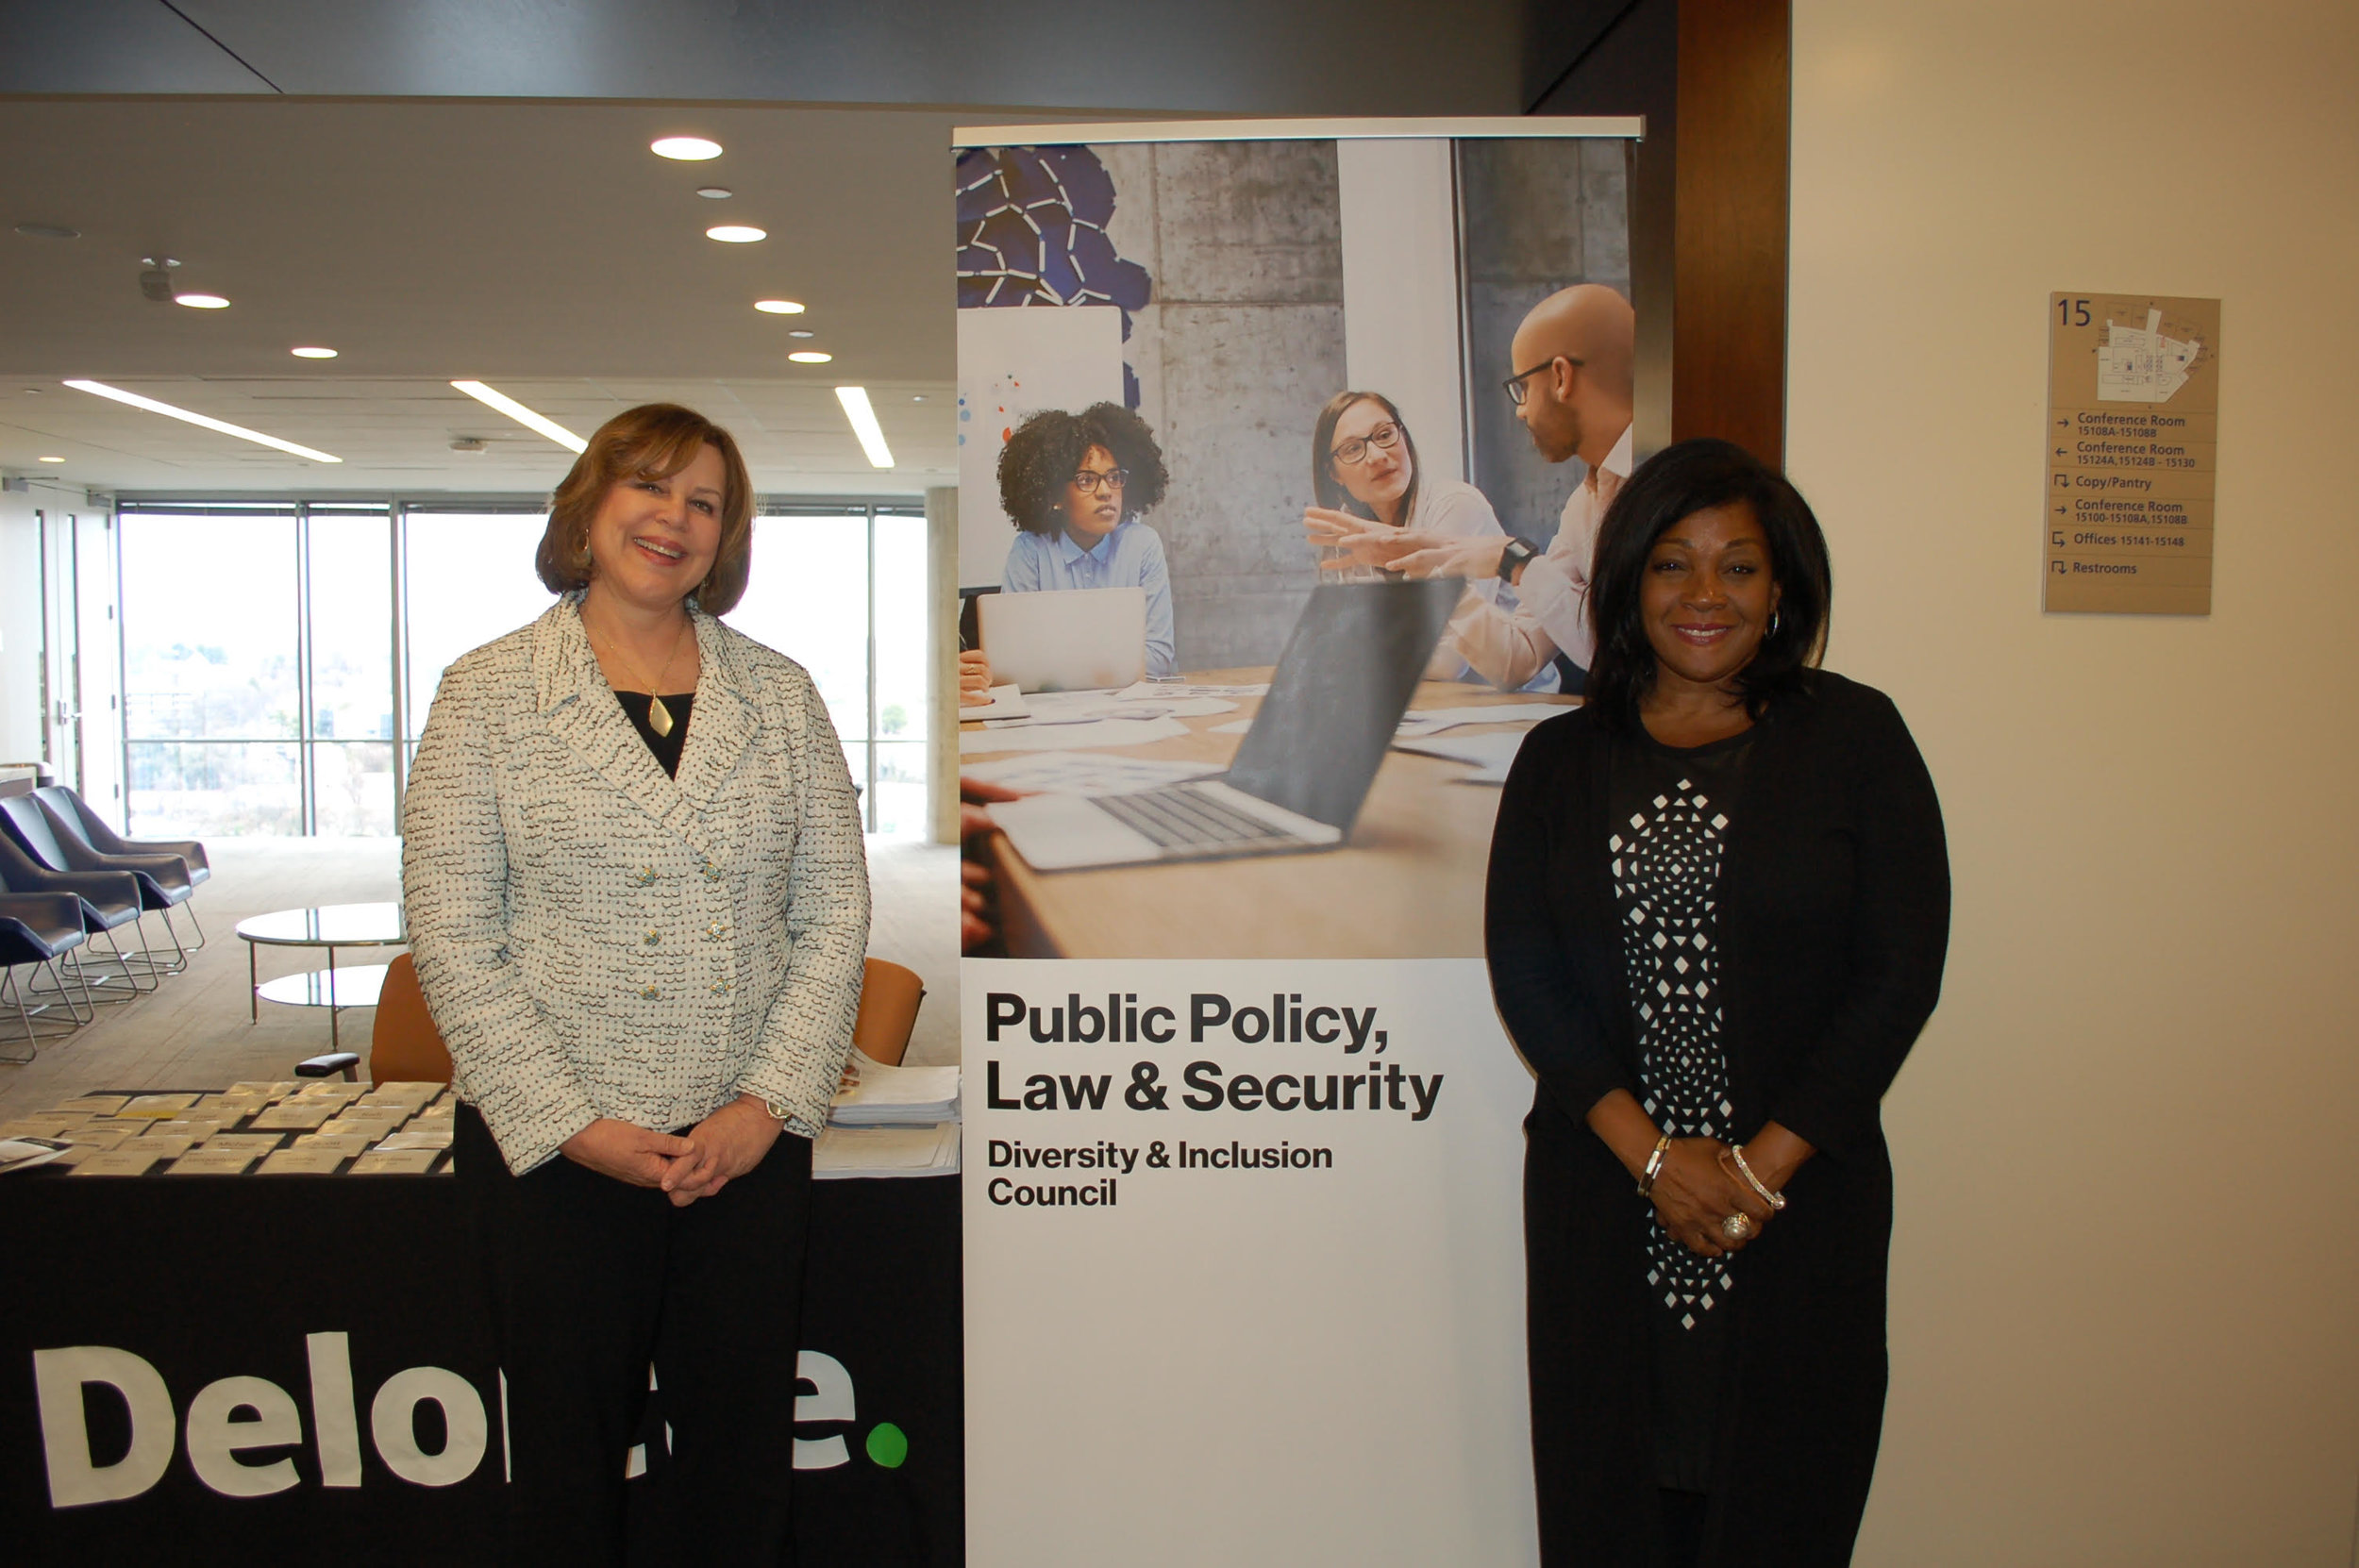 Sharon Rowen with Michelle C. Ifill, Senior Vice President & General Counsel of Verizon Corporate Services Group